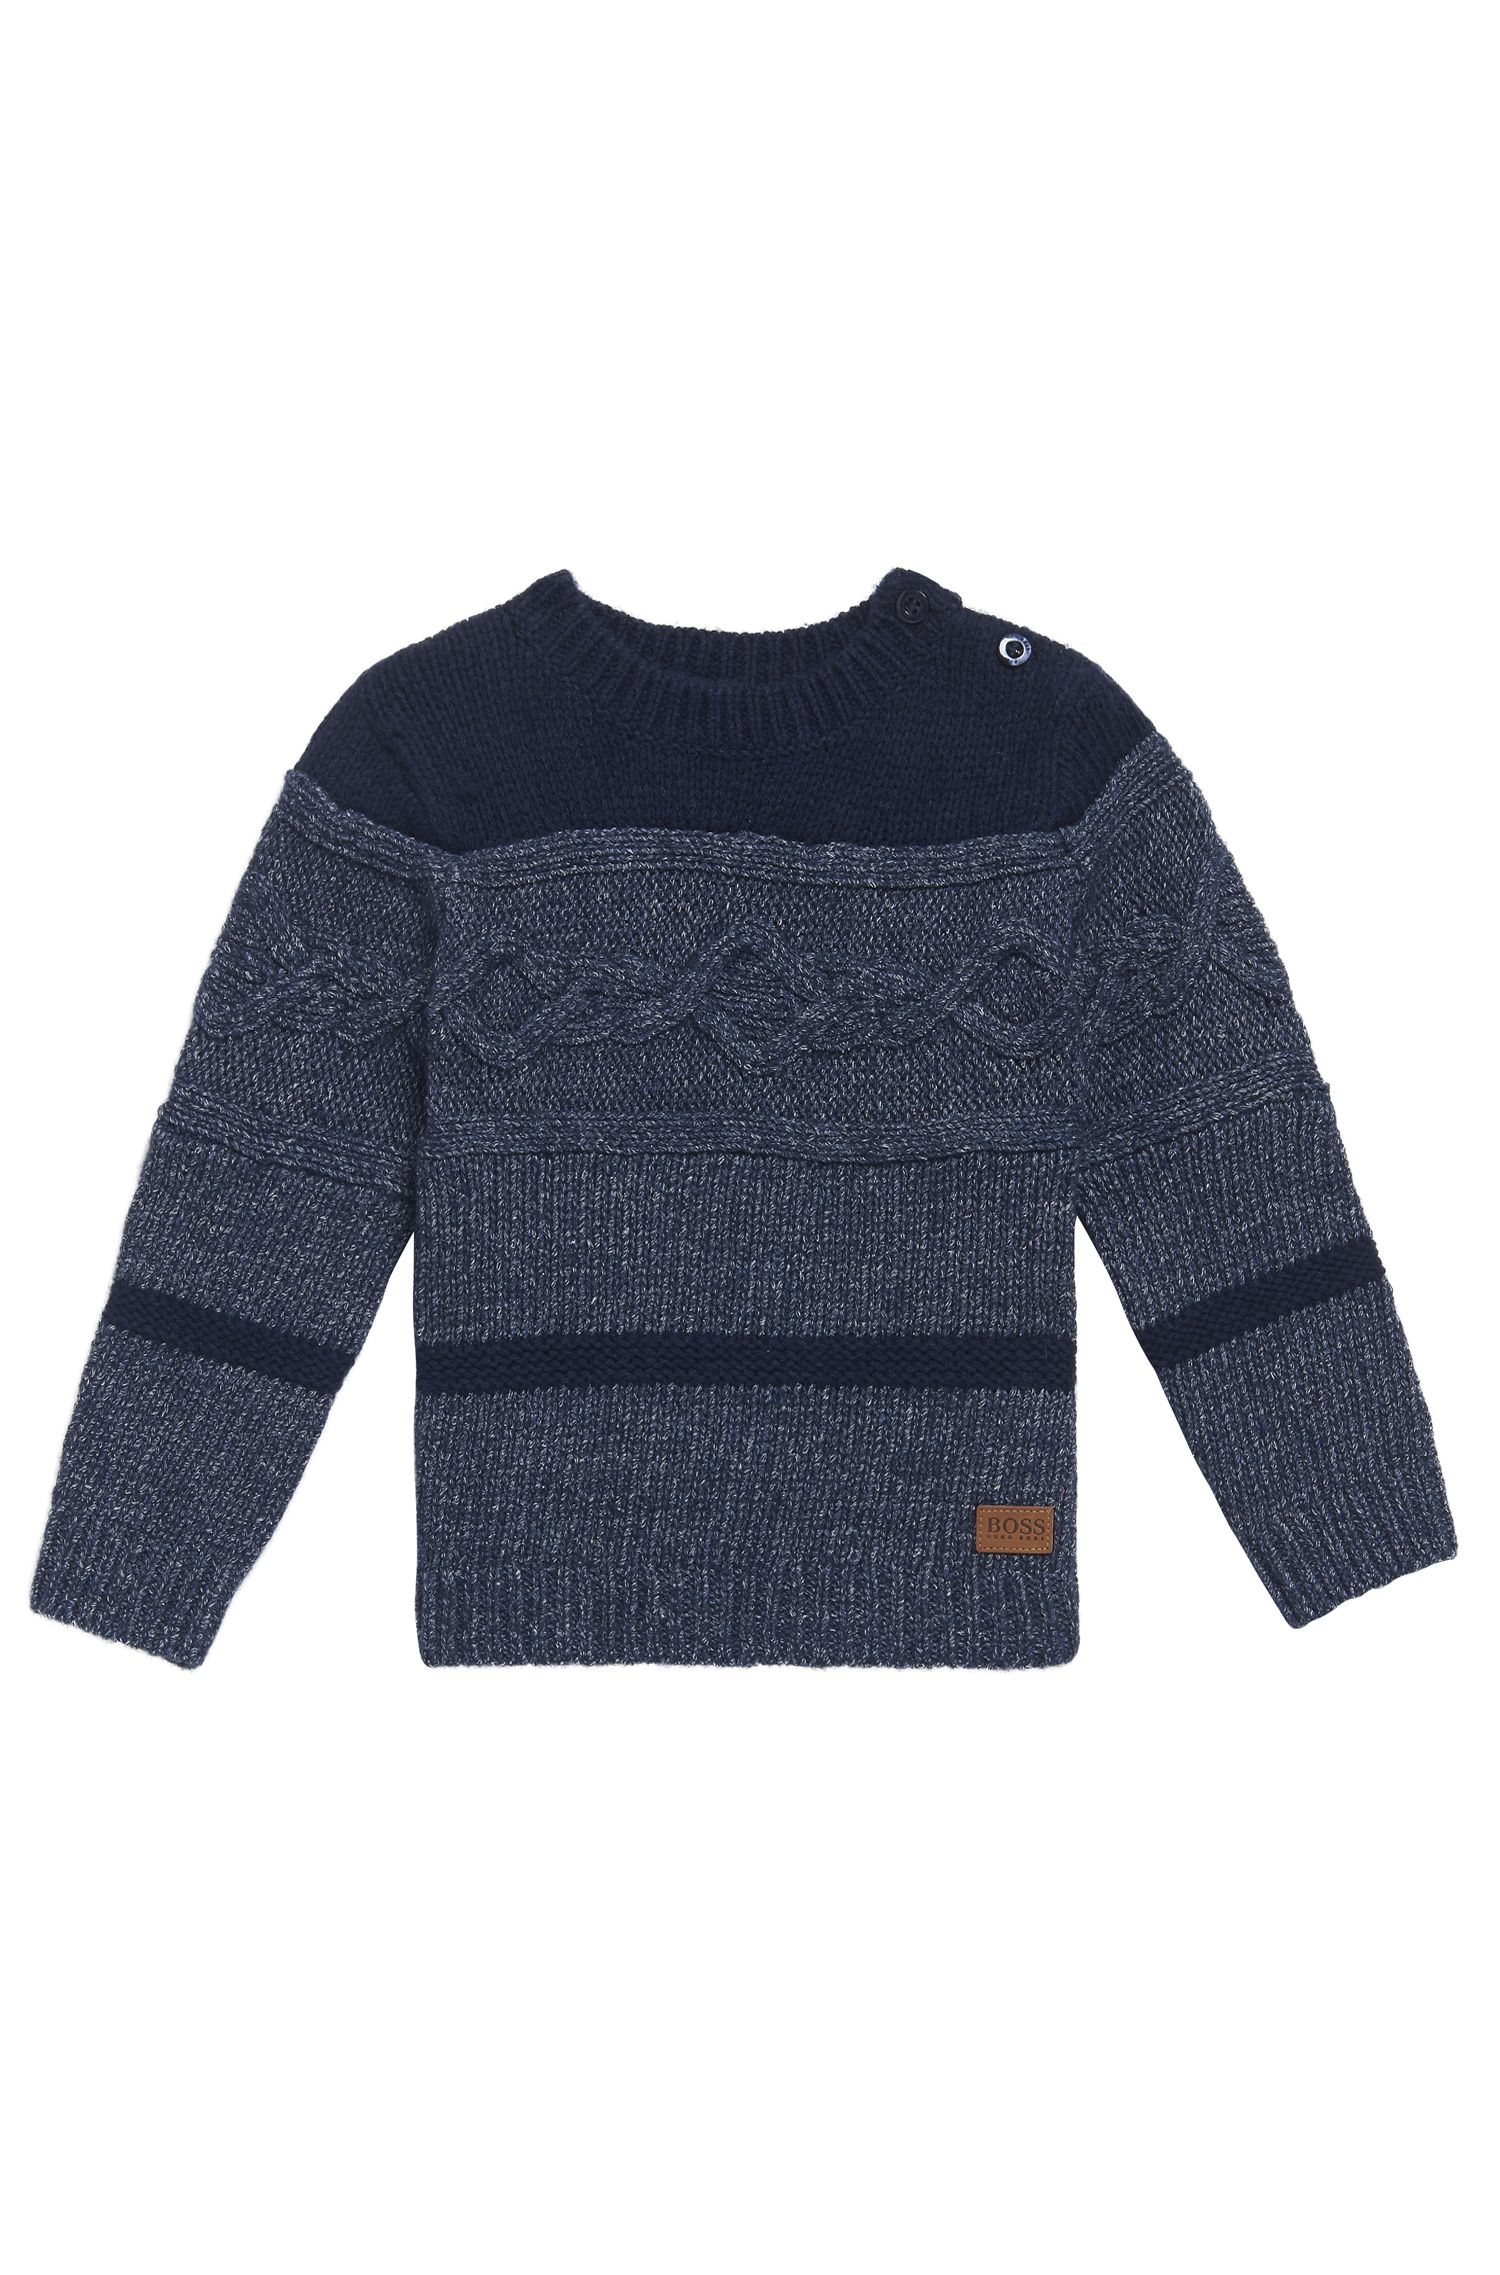 'J05516' | Toddler Stretch Cotton Blend Patterned Sweater